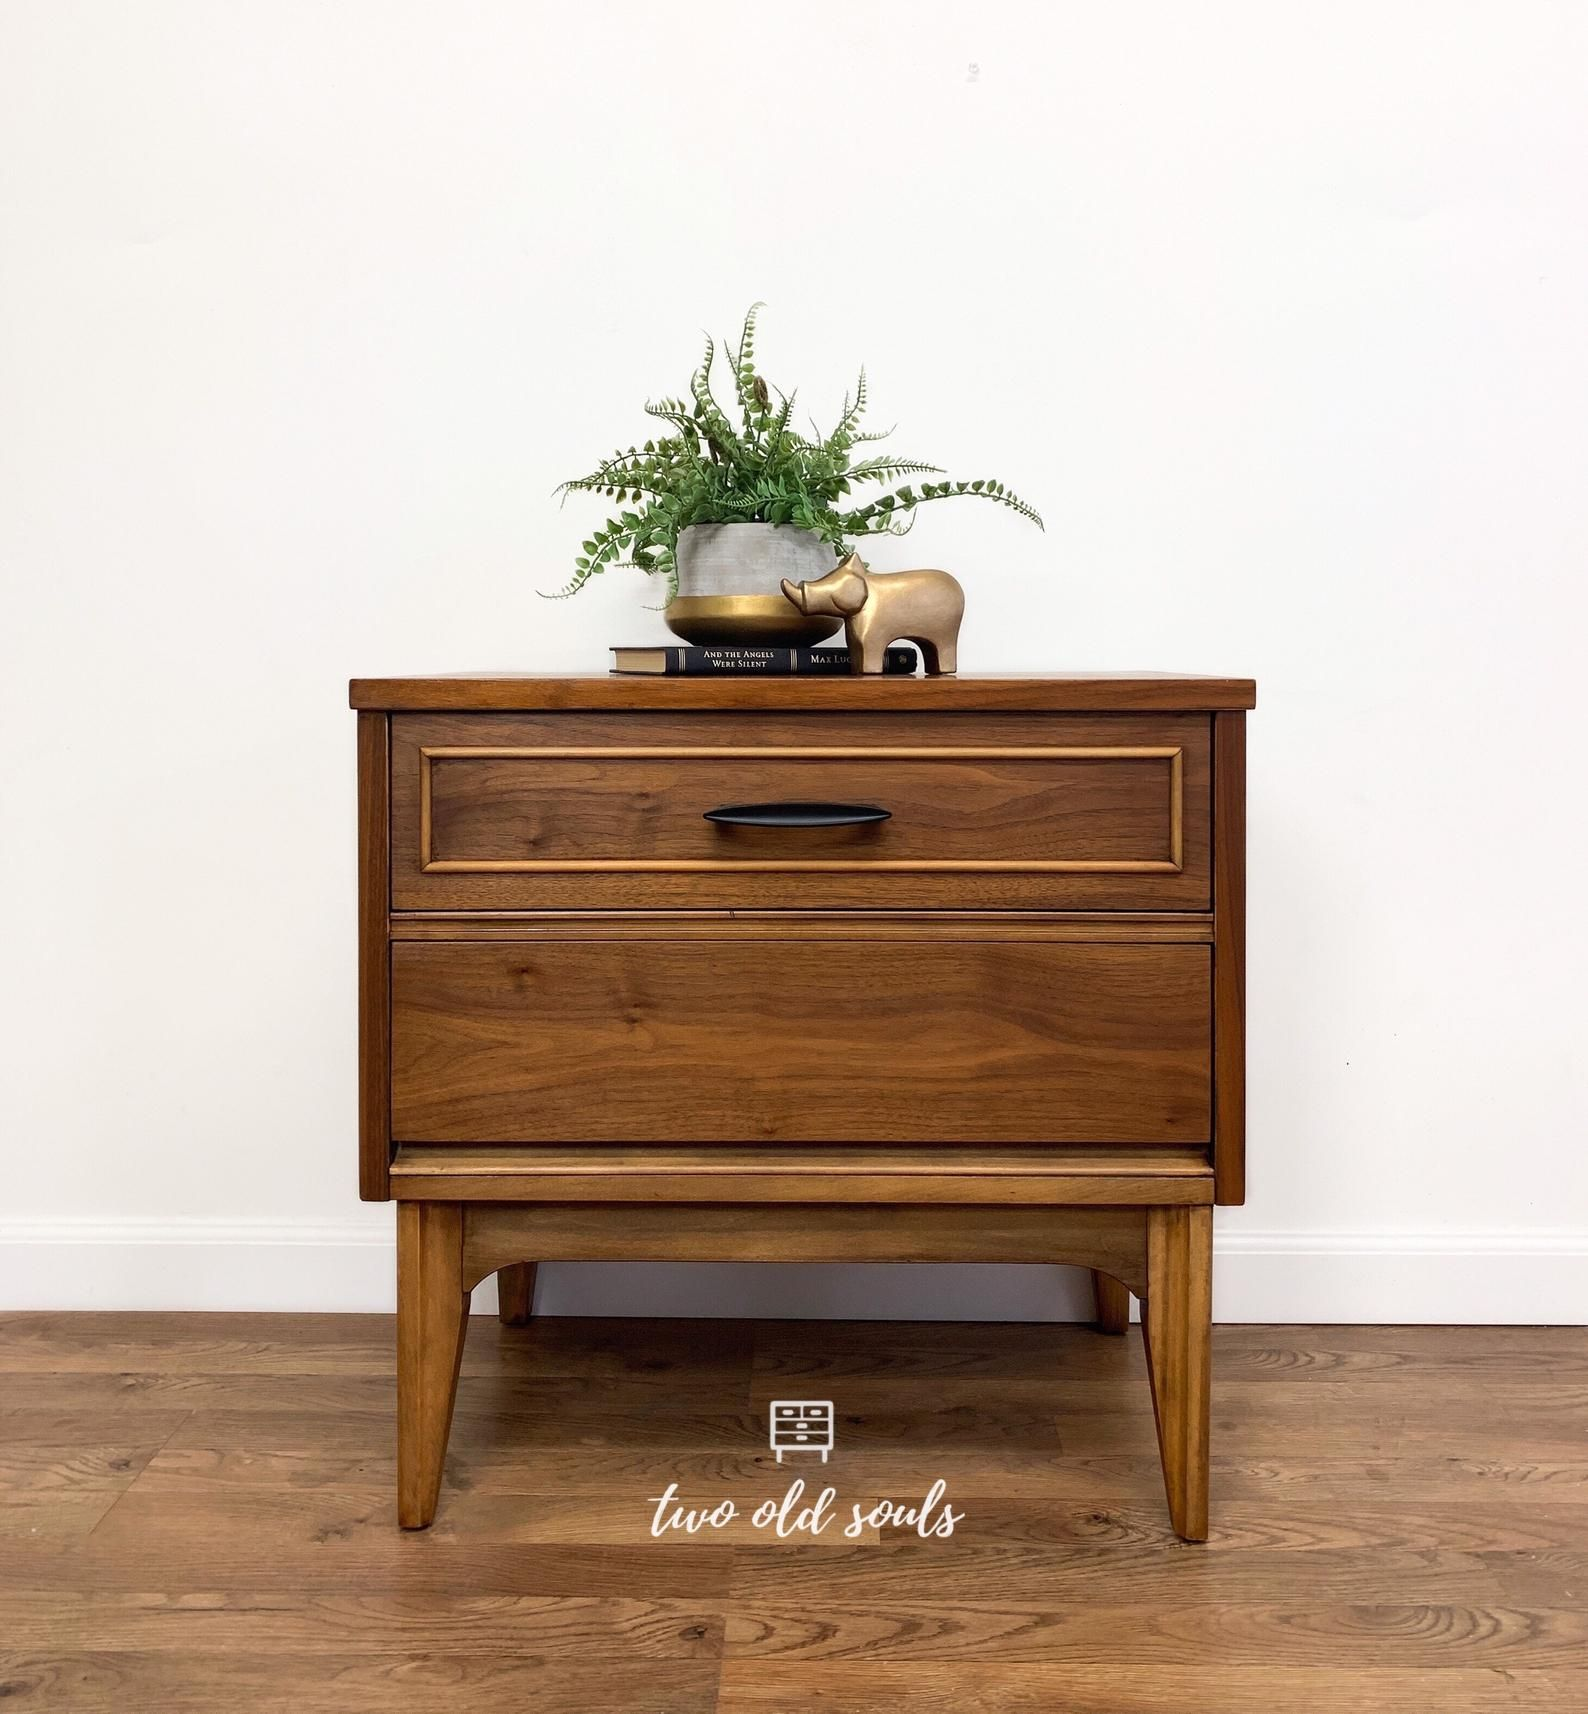 Vintage Mid Century Modern Nightstand By Dixie Bedside Table Etsy In 2020 Mid Century Modern Nightstand Modern Nightstand Mid Century Modern